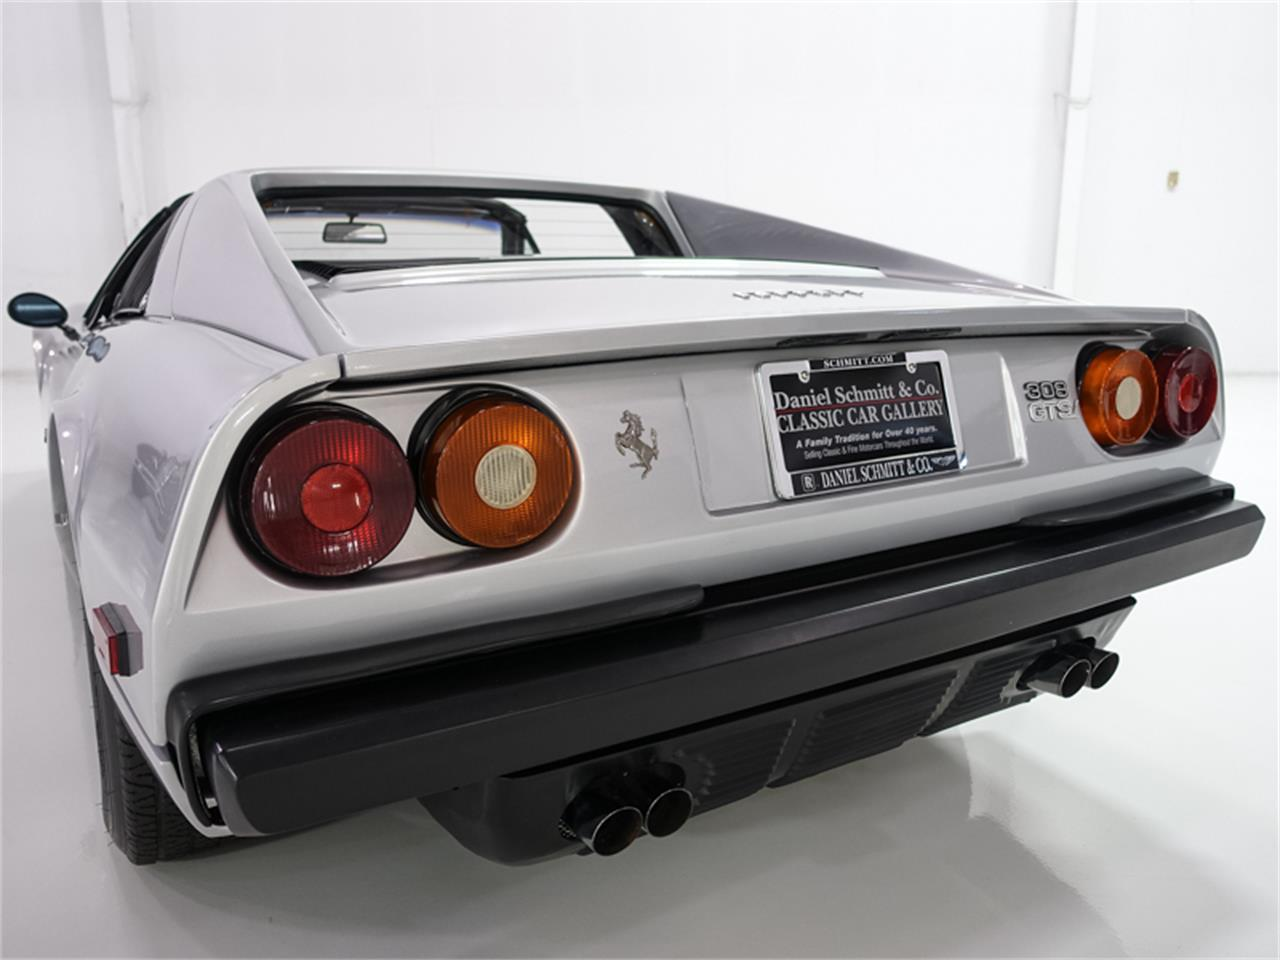 Large Picture of '81 Ferrari 308 GTSI located in Missouri Offered by Daniel Schmitt & Co. - HEGL